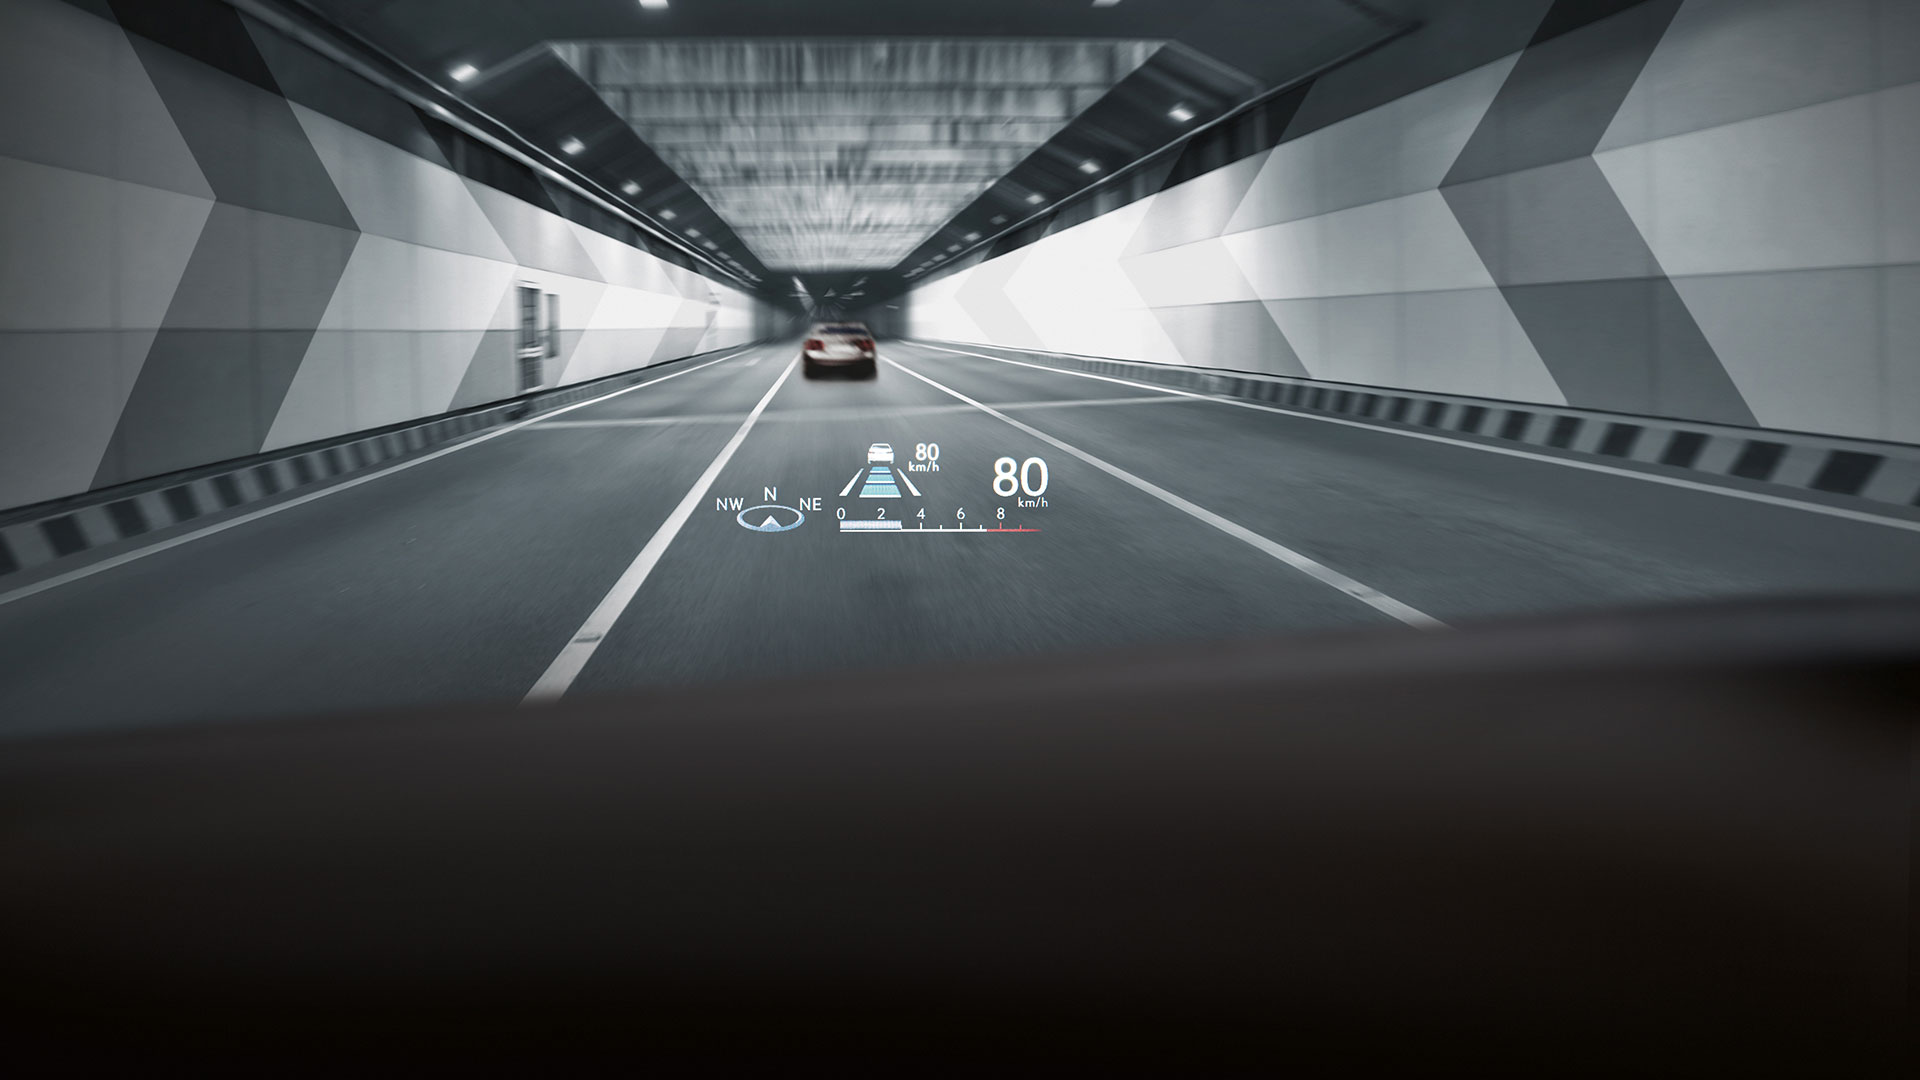 2017 lexus lc 500 features extra wide head up display